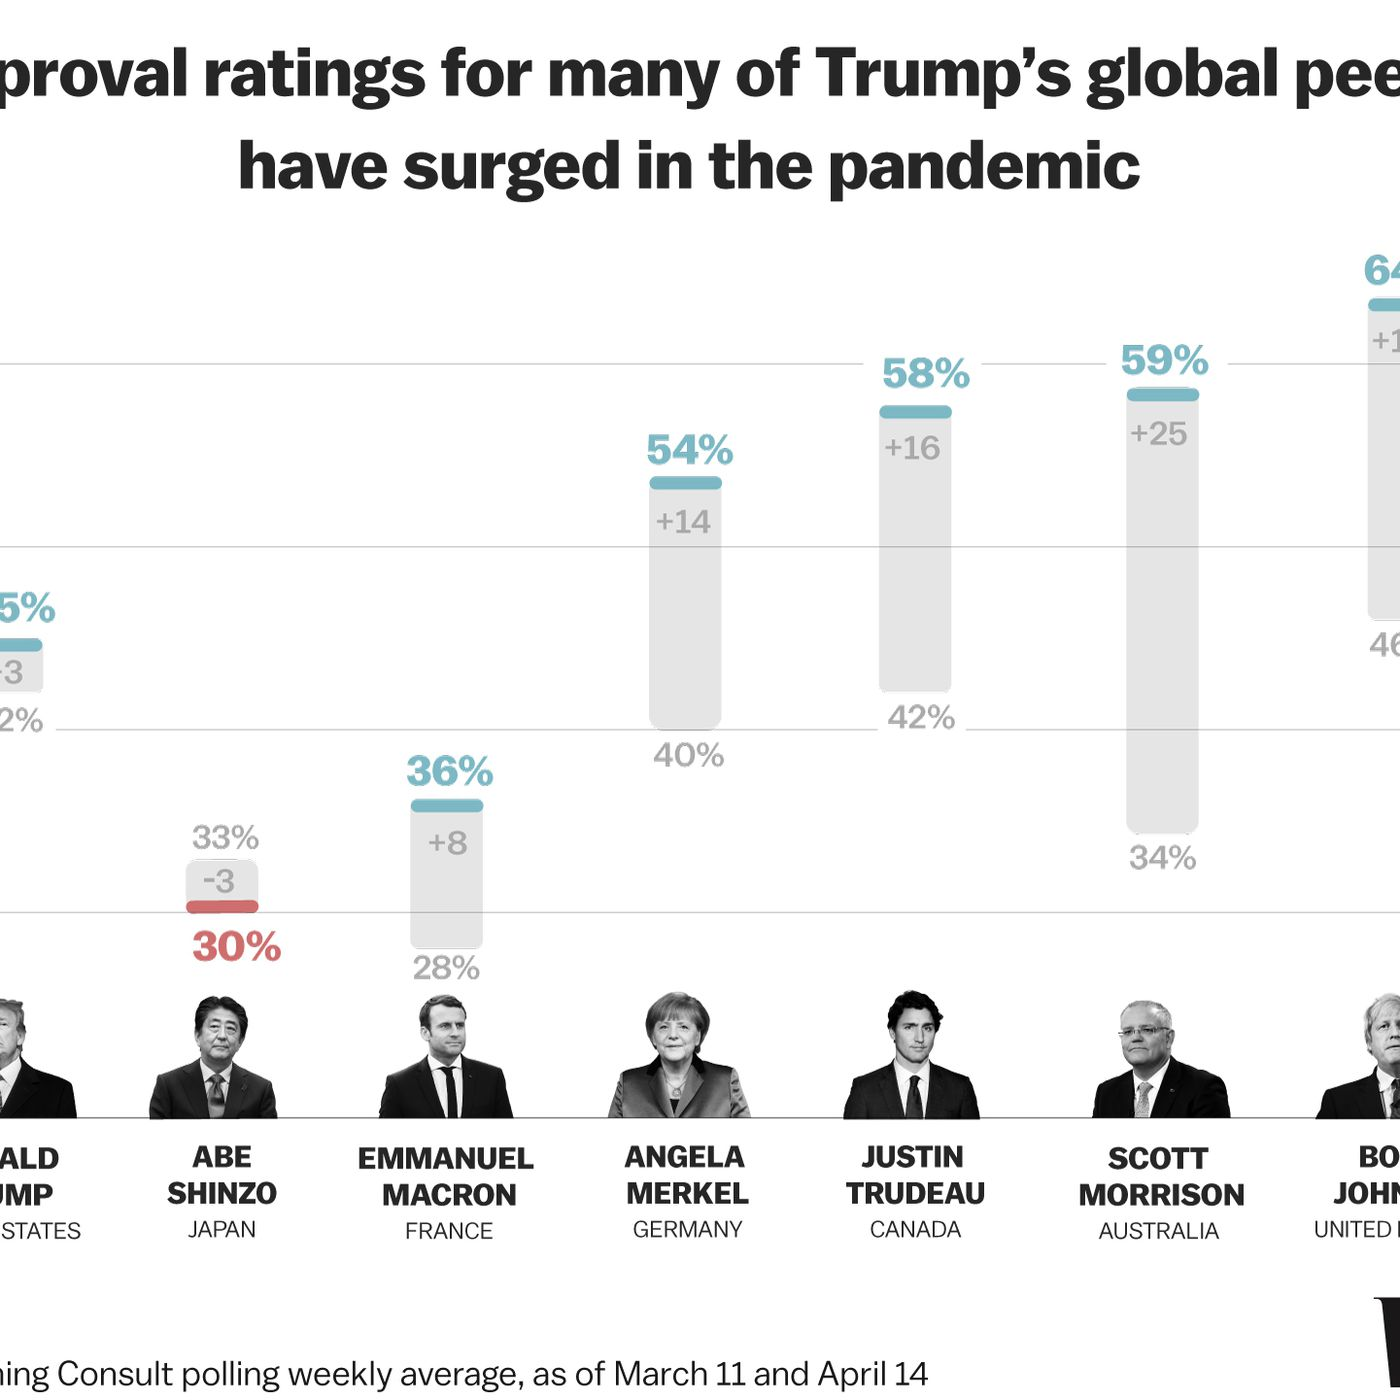 Trump S Dismal Coronavirus Polling In 2 Charts Governors And World Leaders See Approval Surges Vox